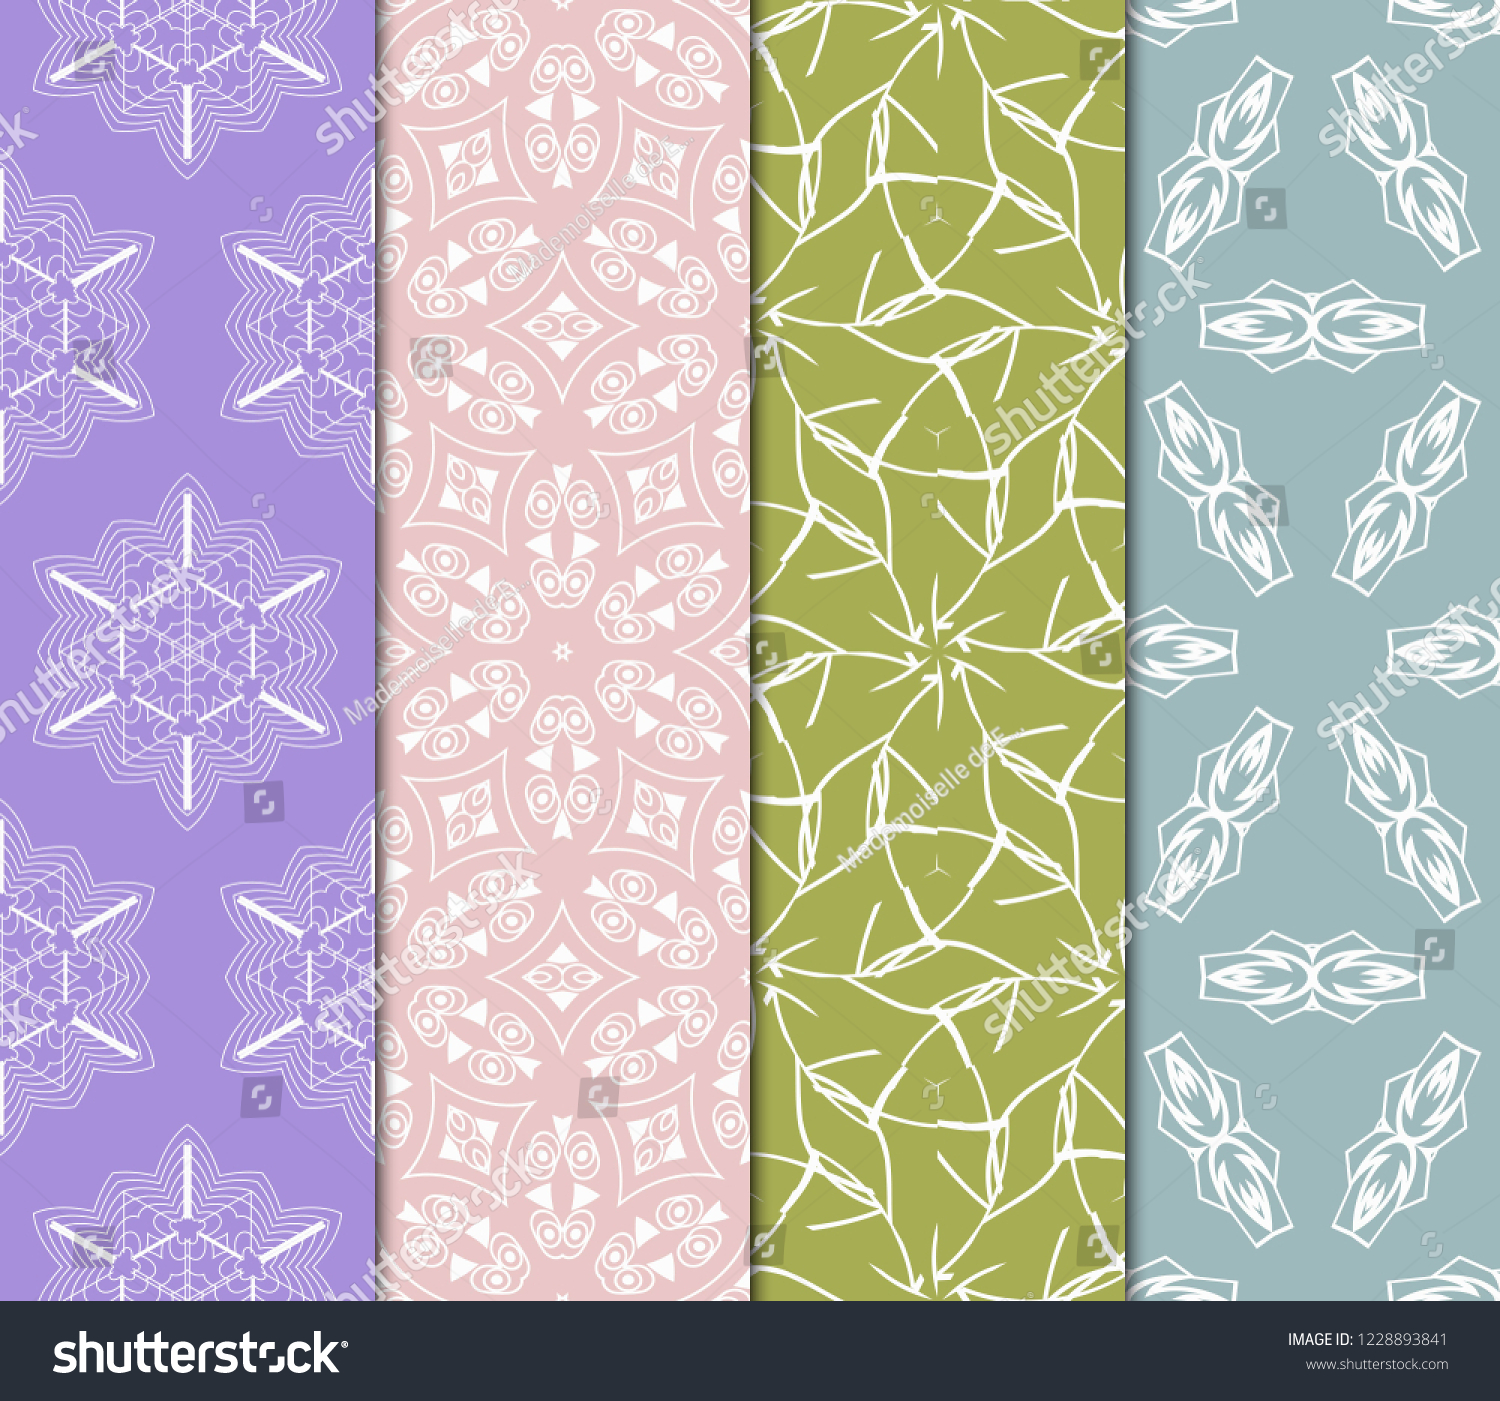 Set Of Floral Ornament. Seamless Vector Pattern. Interior Decoration, Wallpaper, Invitation, Fashion Design #1228893841